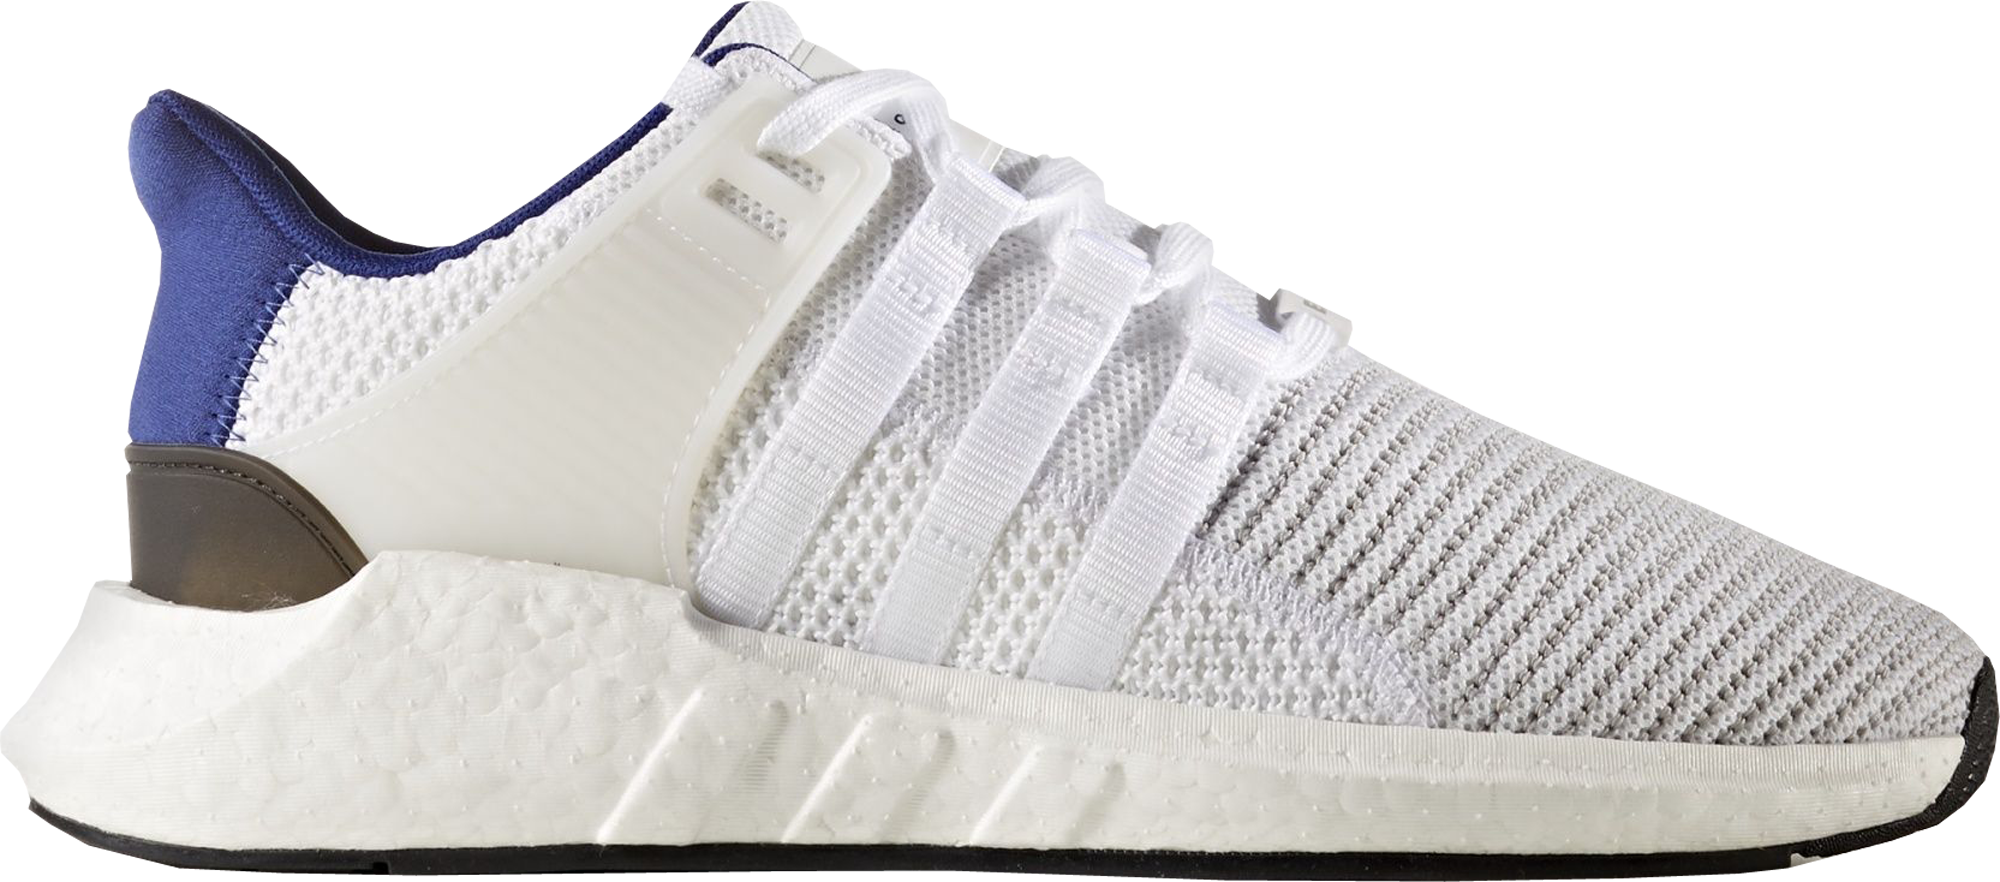 adidas EQT Support 93/17 White Royal